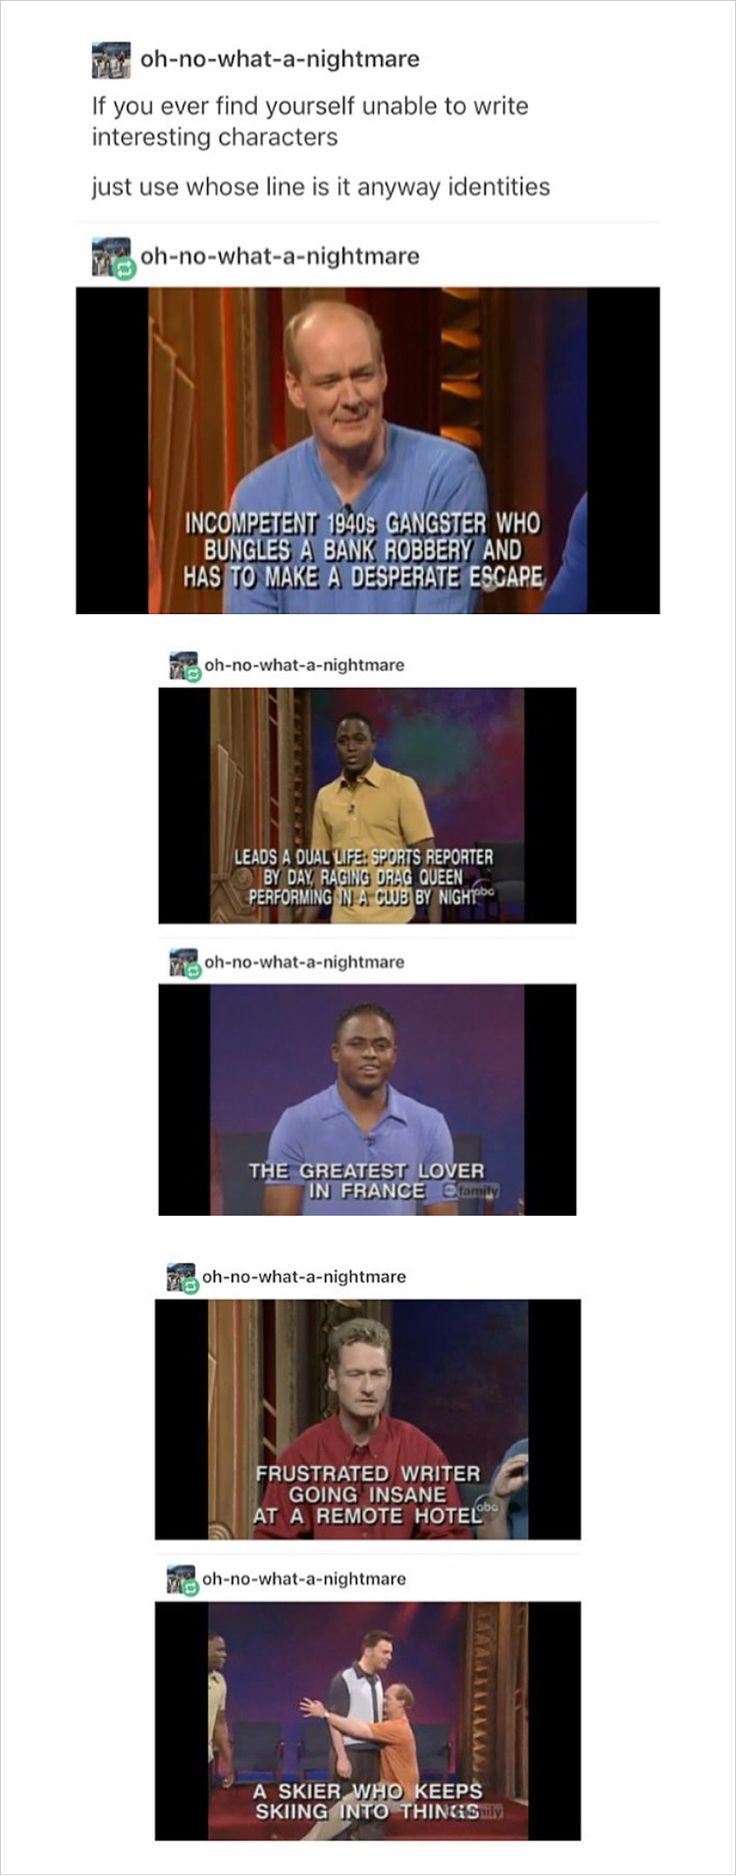 Whose Line is it Anyways | funny Tumblr post #ad